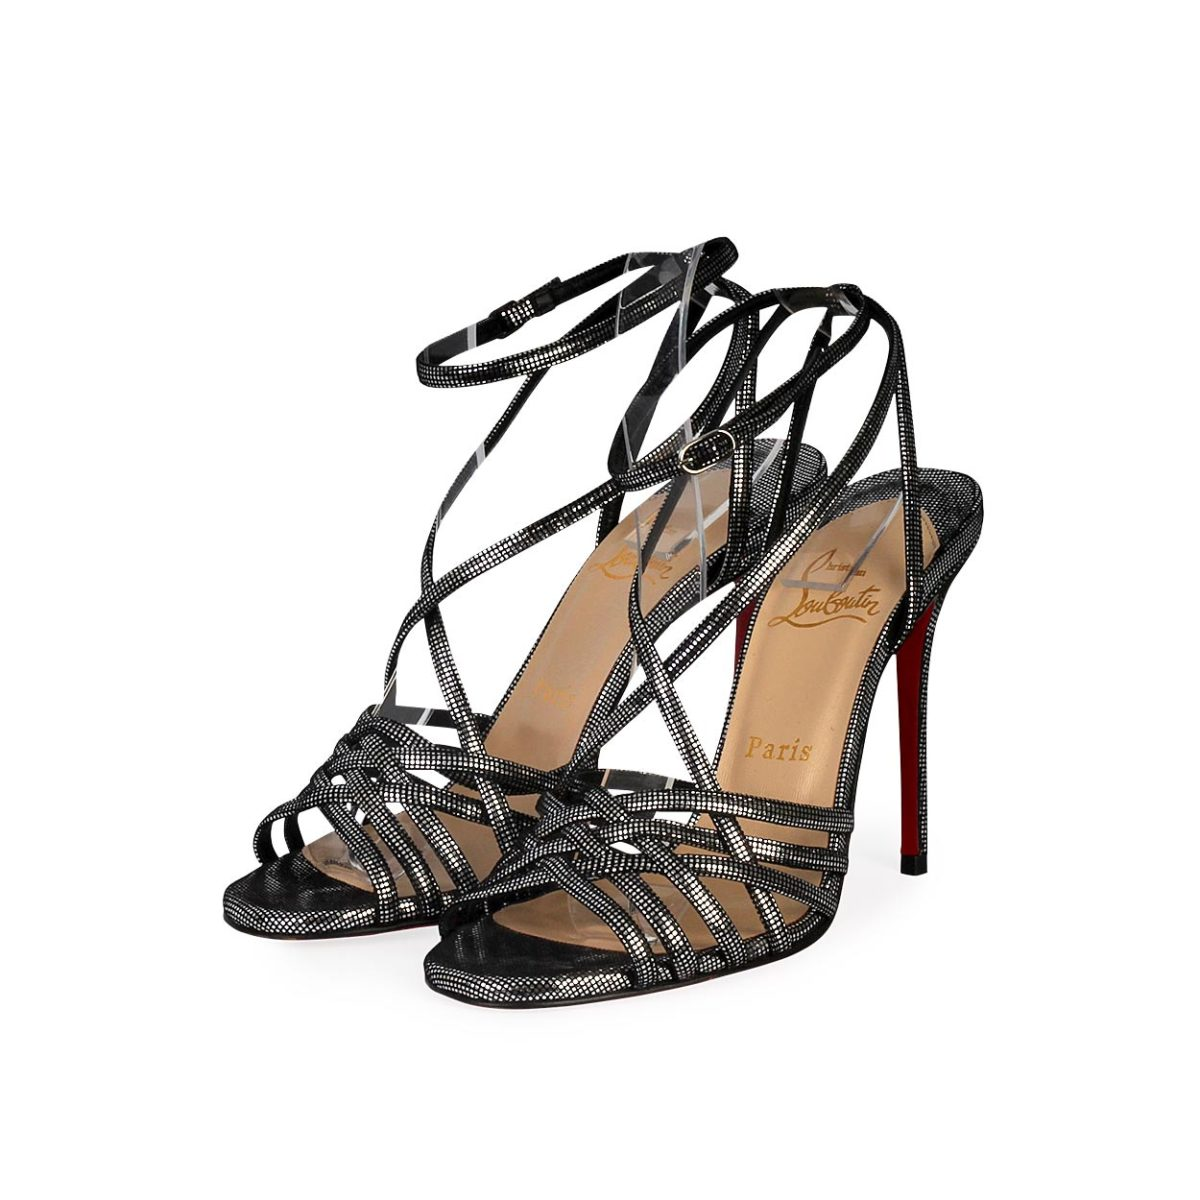 size 40 2c48c 1a954 CHRISTIAN LOUBOUTIN Metallic Leather Beverly Sandals Black/Silver - S: 37.5  (4.5)